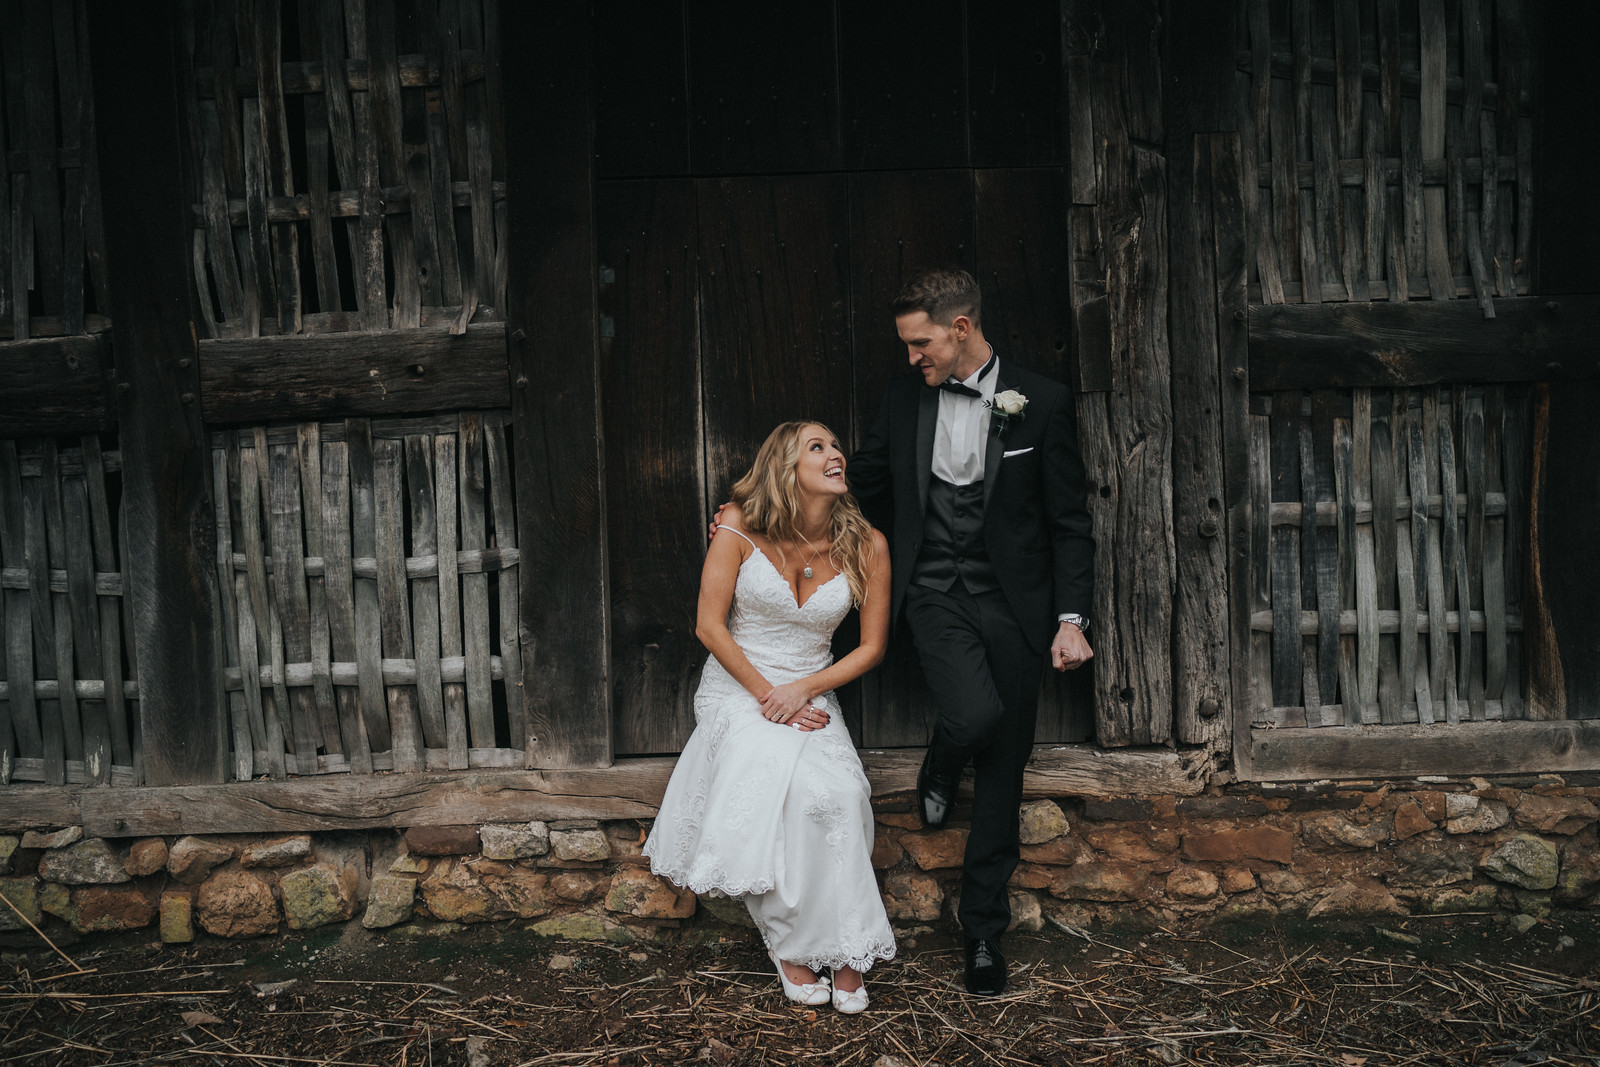 Full of Smiles Bride and Groom Wedding Photo